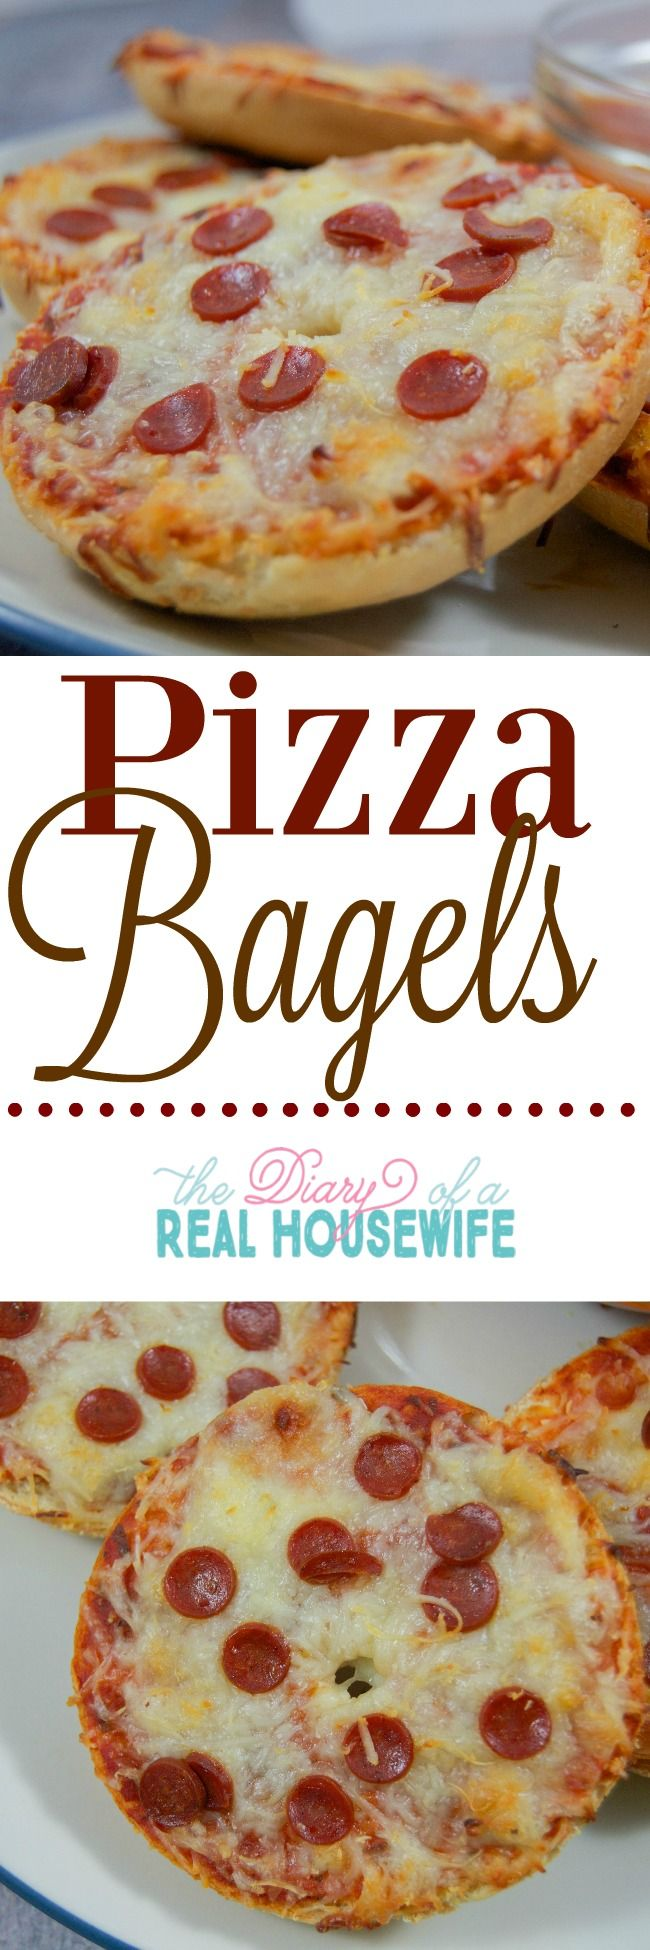 Yummy pizza bagels! My kids really loved this dinner recipe.                                                                                                                                                                                 More